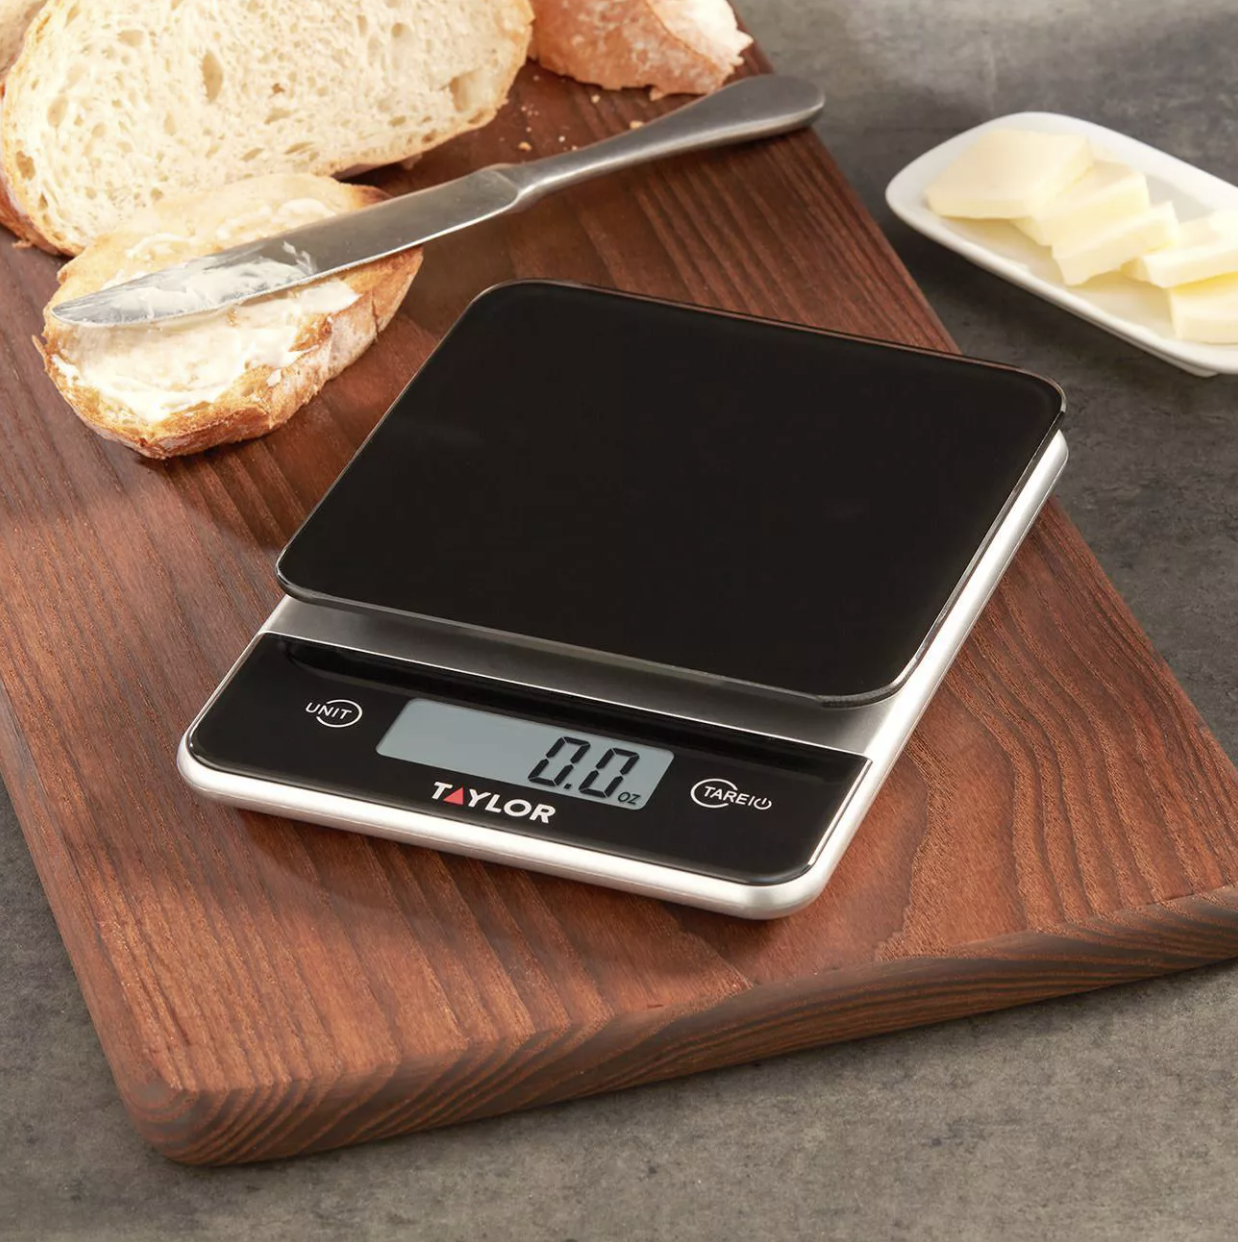 The food scale on top of a cutting board